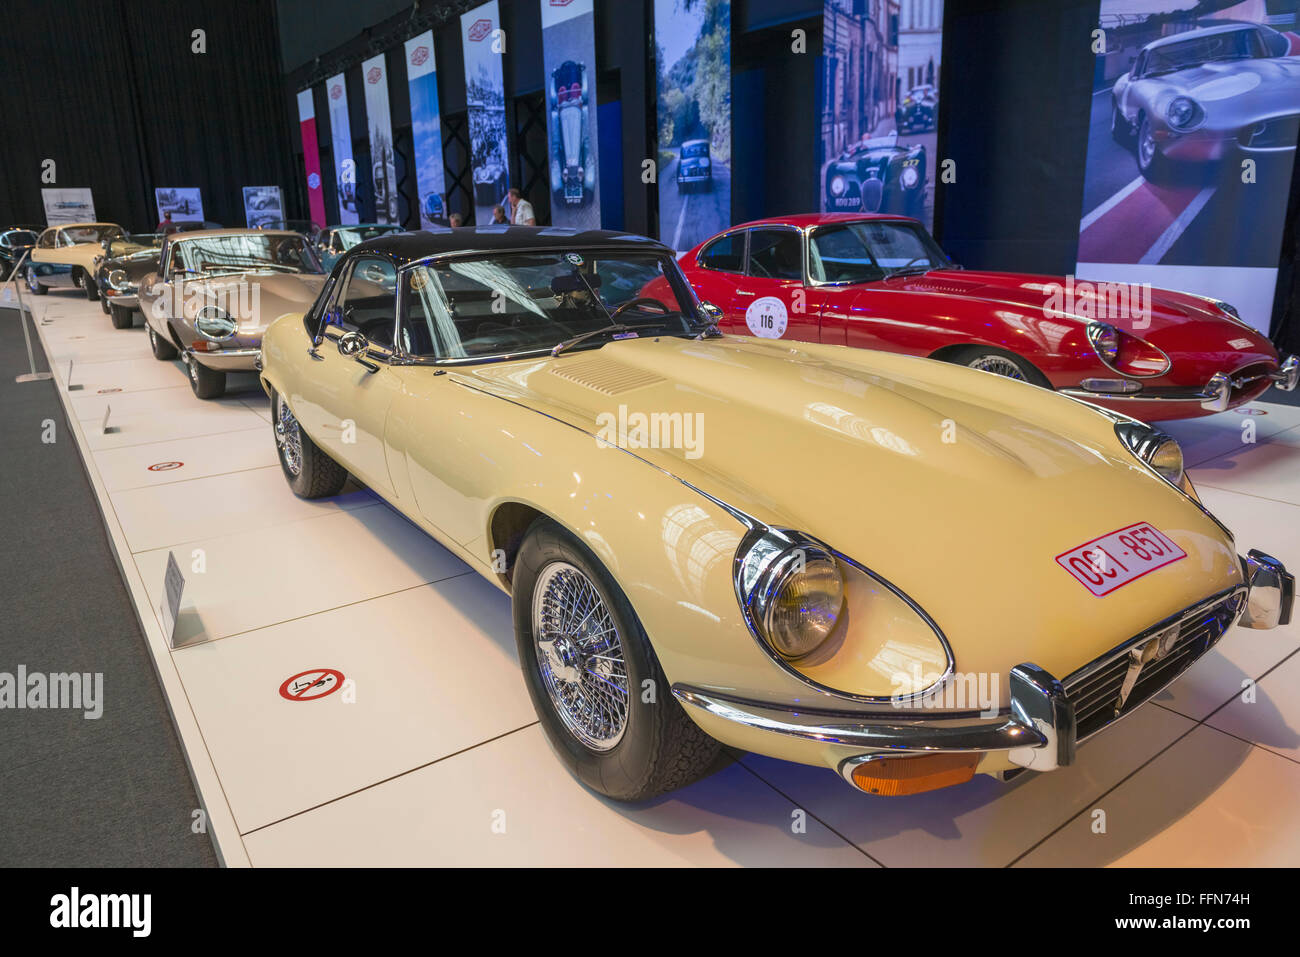 Classic cars inside the Autoworld car museum, Brussels, Belgium, Europe - Stock Image